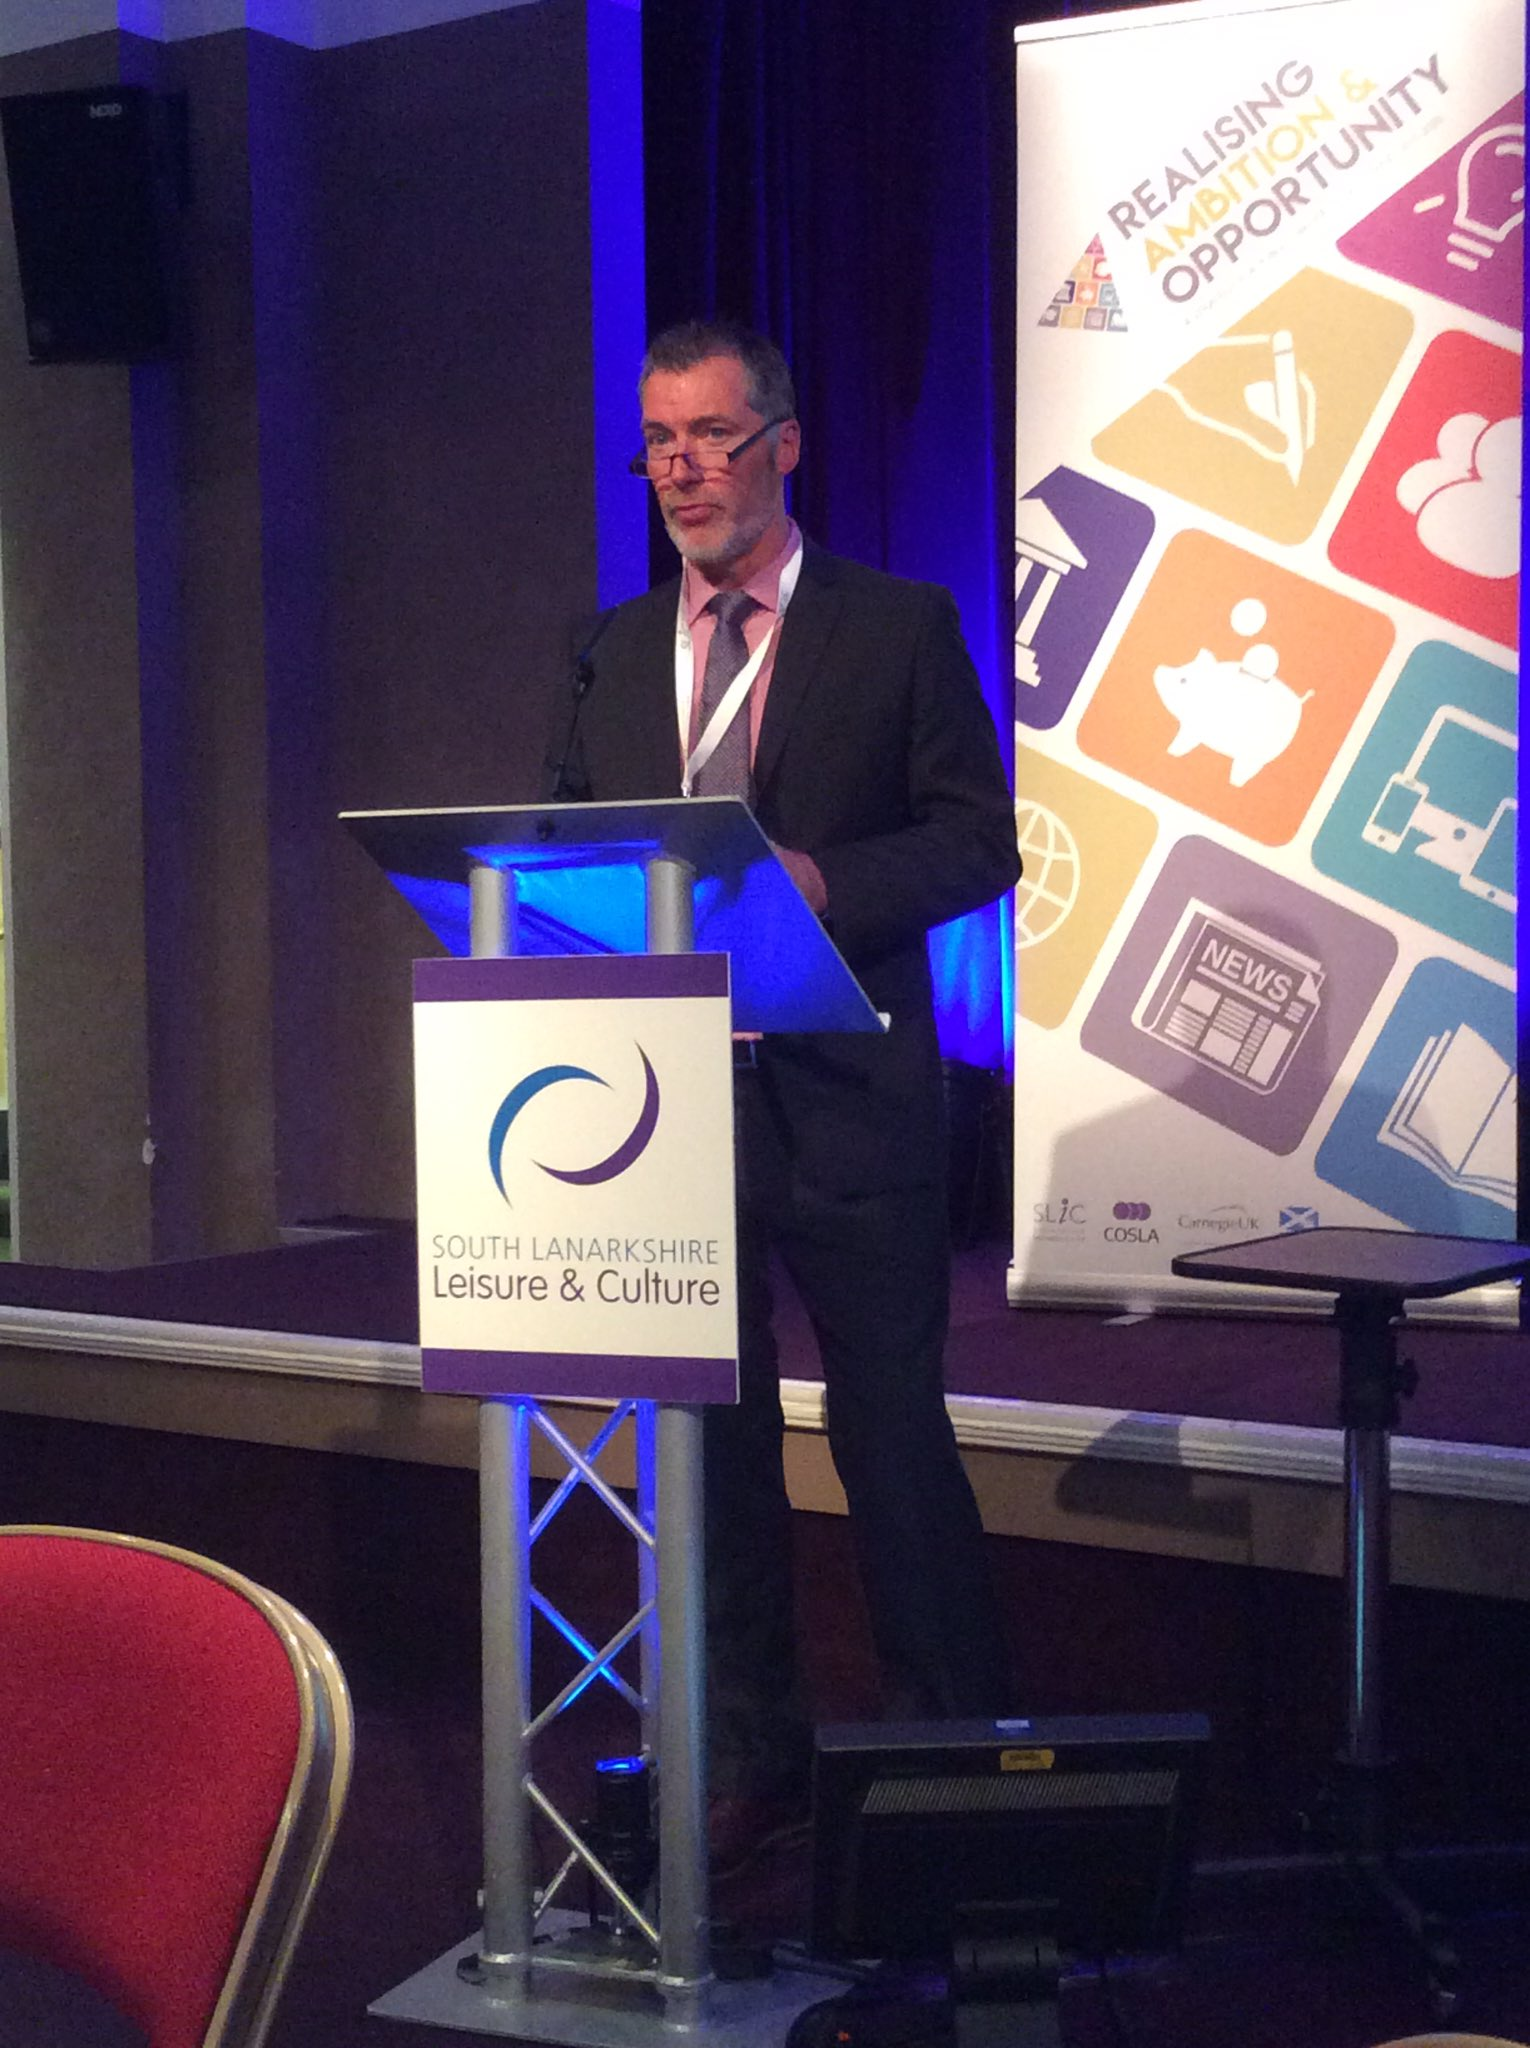 Excellent chairing this morning from Gerry Campbell of South Lanarkshire Leisure #scotlibstrat https://t.co/DVvhweYfVa